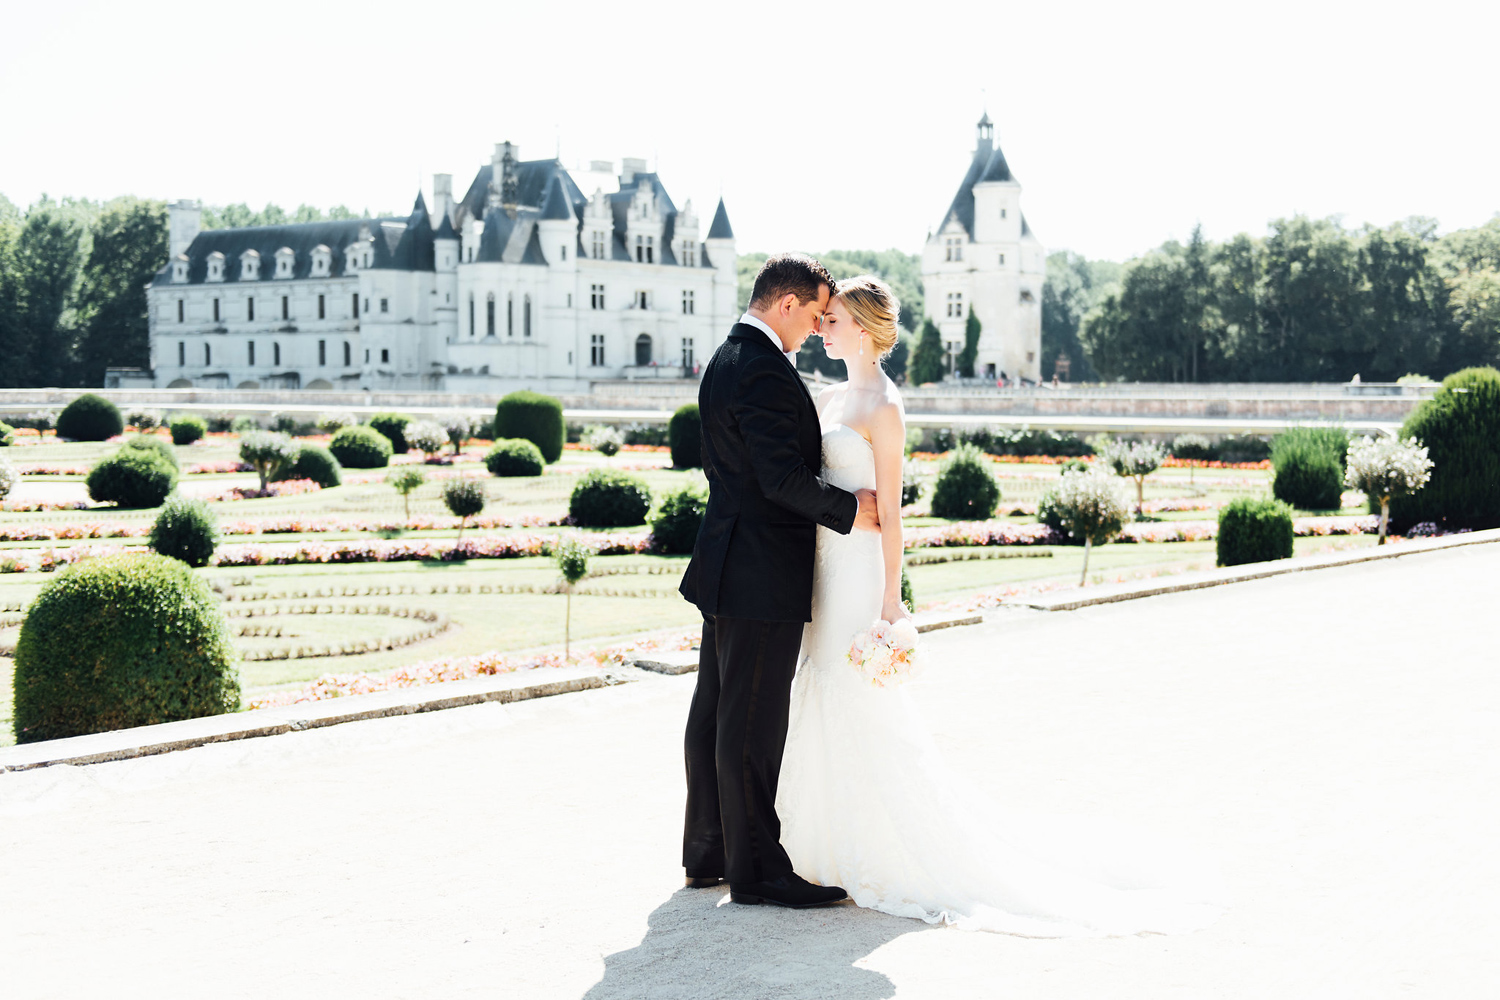 017-katie-mitchell-french-chateau-d-artigny-chateau-de-chenonceau-wedding-photography.jpg